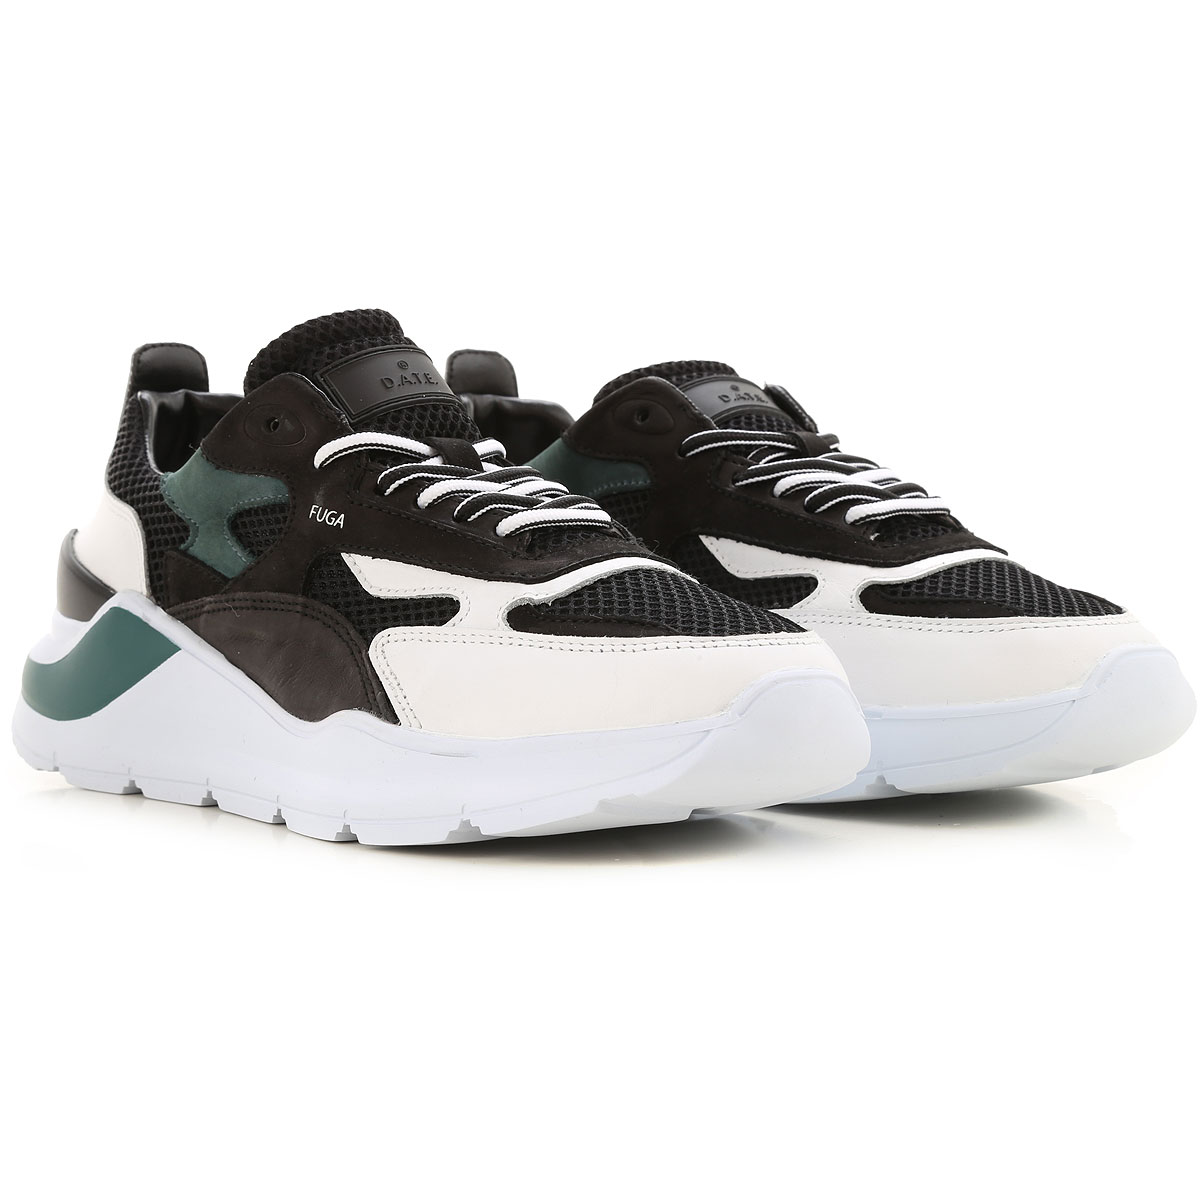 D.A.T.E. Sneakers for Men On Sale, Black, Leather, 2019, US 9 - EU 42 - UK 8 - JP 27 US 10 - EU 43 - UK 9 - JP 27.5 US 11 - EU 44 - UK 10 - JP 28 US 1